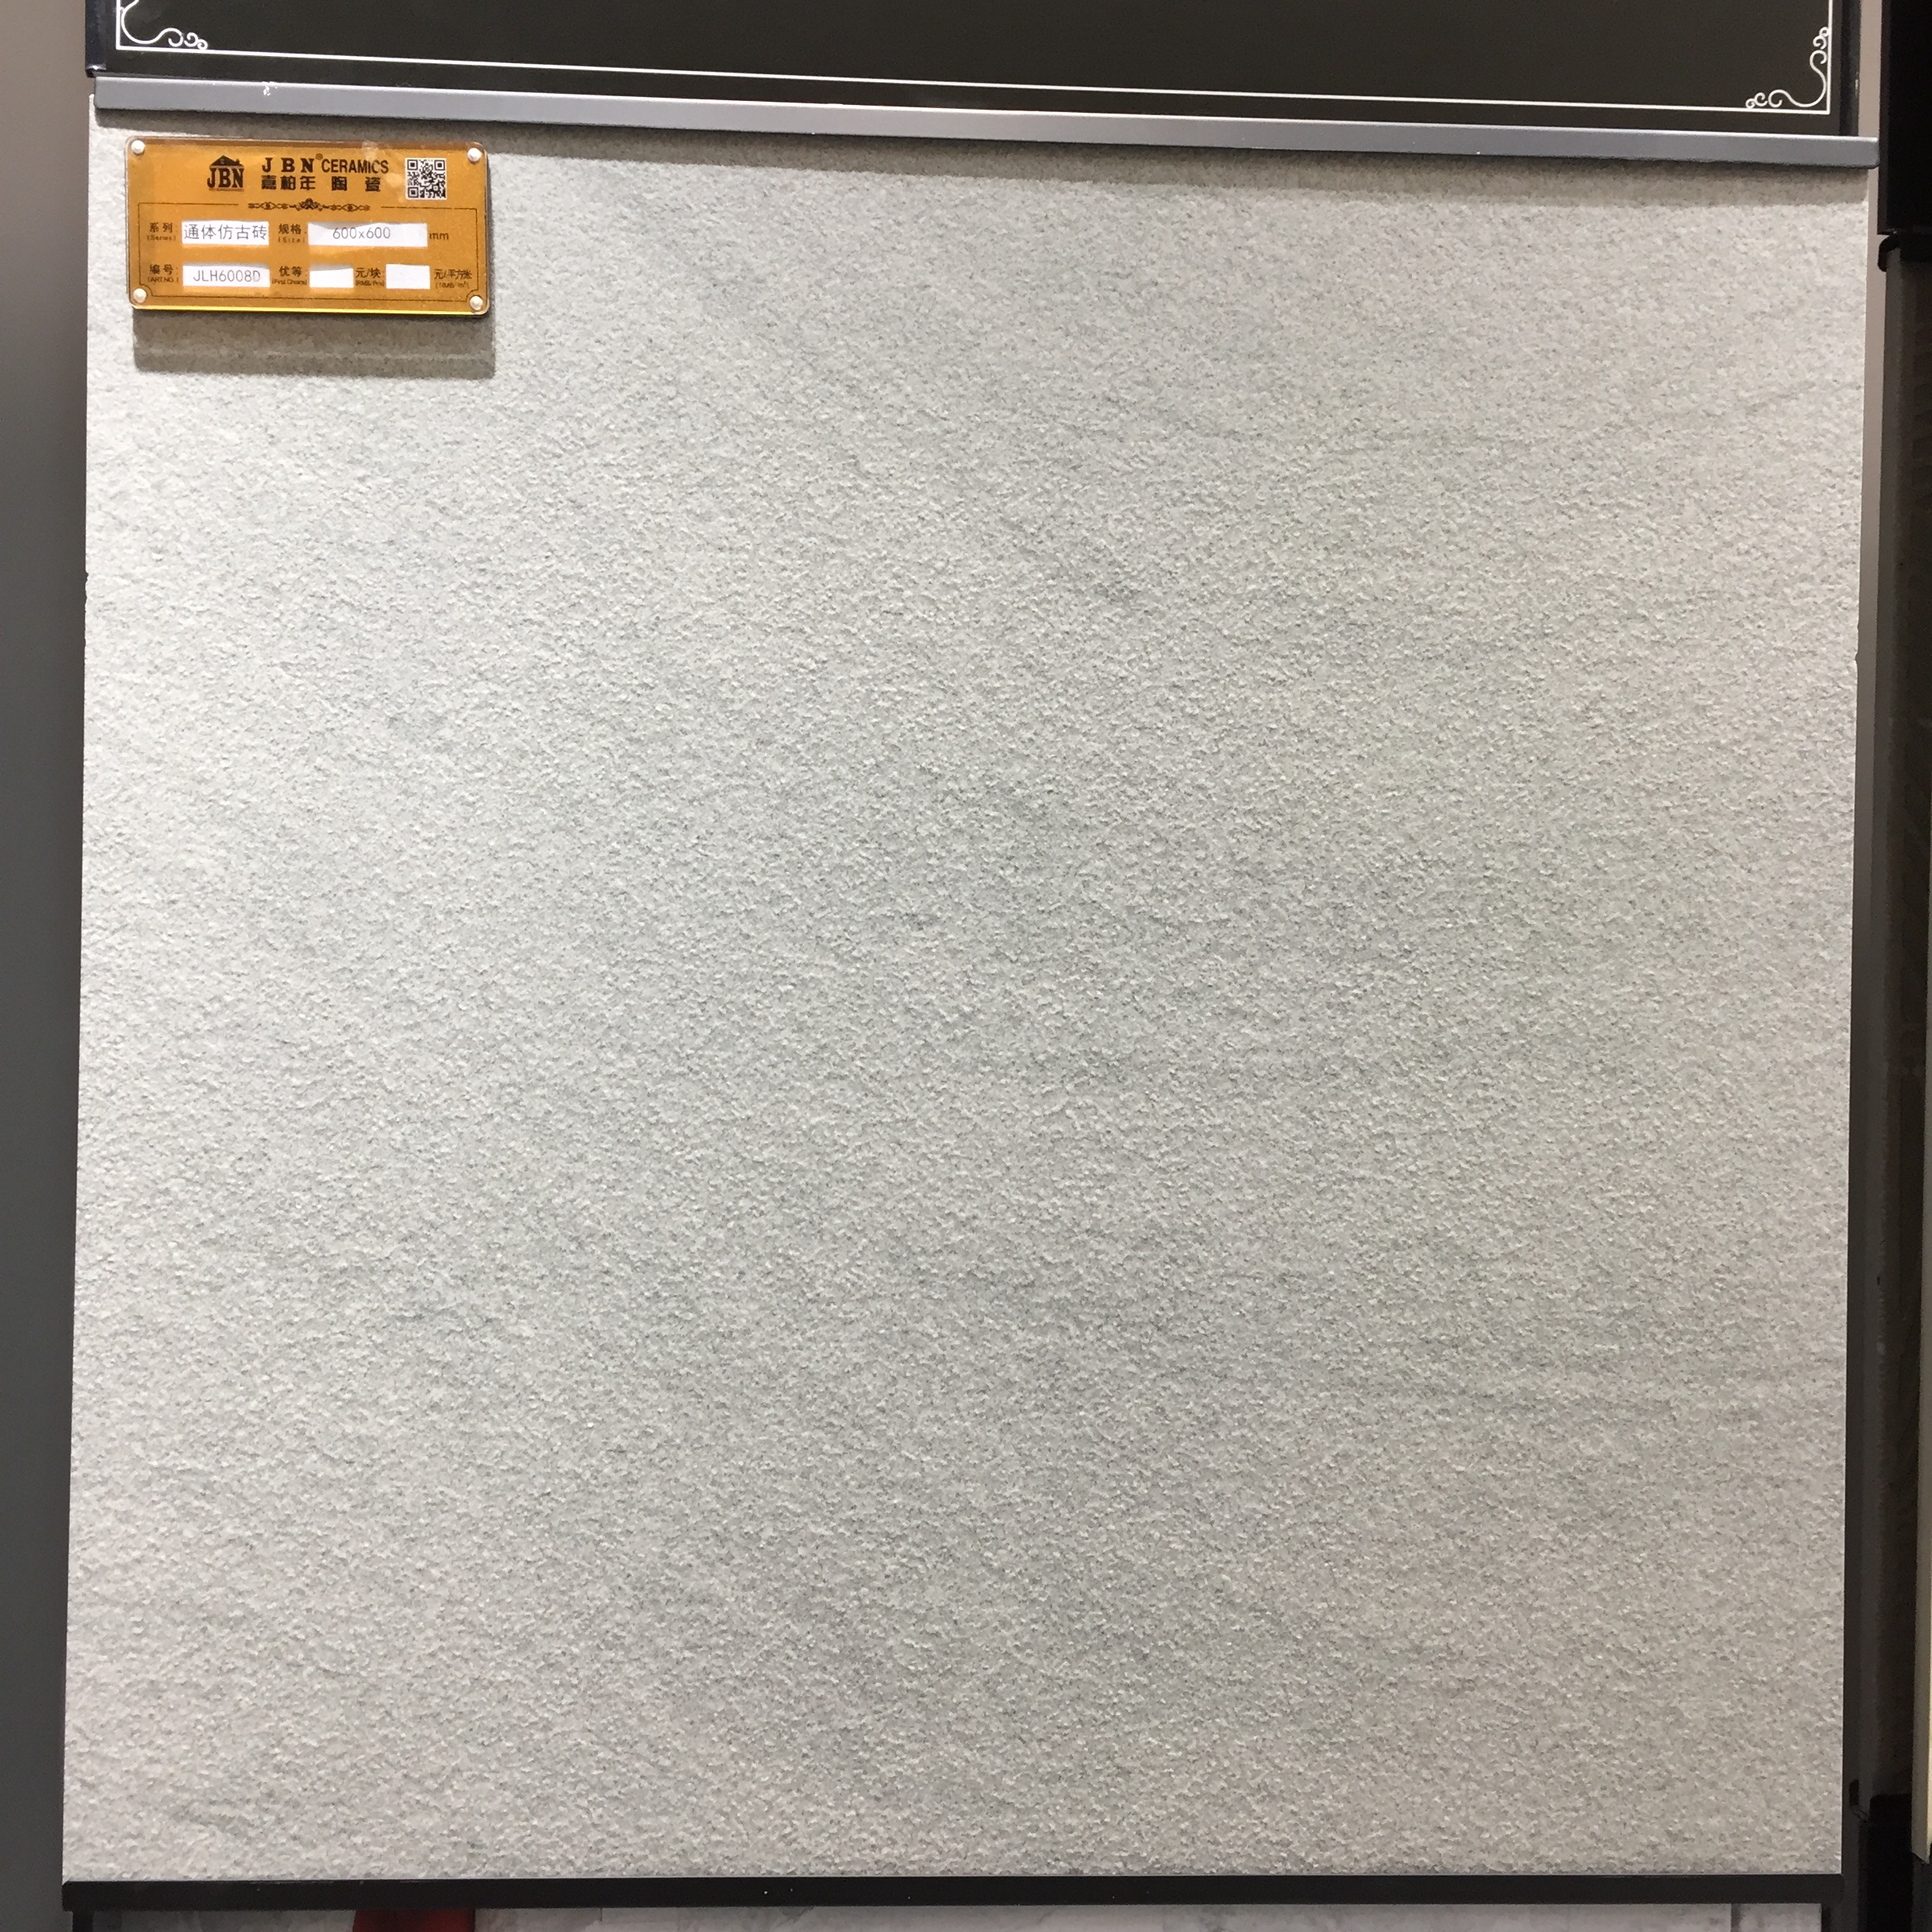 JBN 2020 Stock Promotion 300x600 Rustic <strong>Tile</strong> Outdoor Indoor Matt Finish <strong>Tile</strong> Full Polished Glazed <strong>Tile</strong> for <strong>Floor</strong> Wall